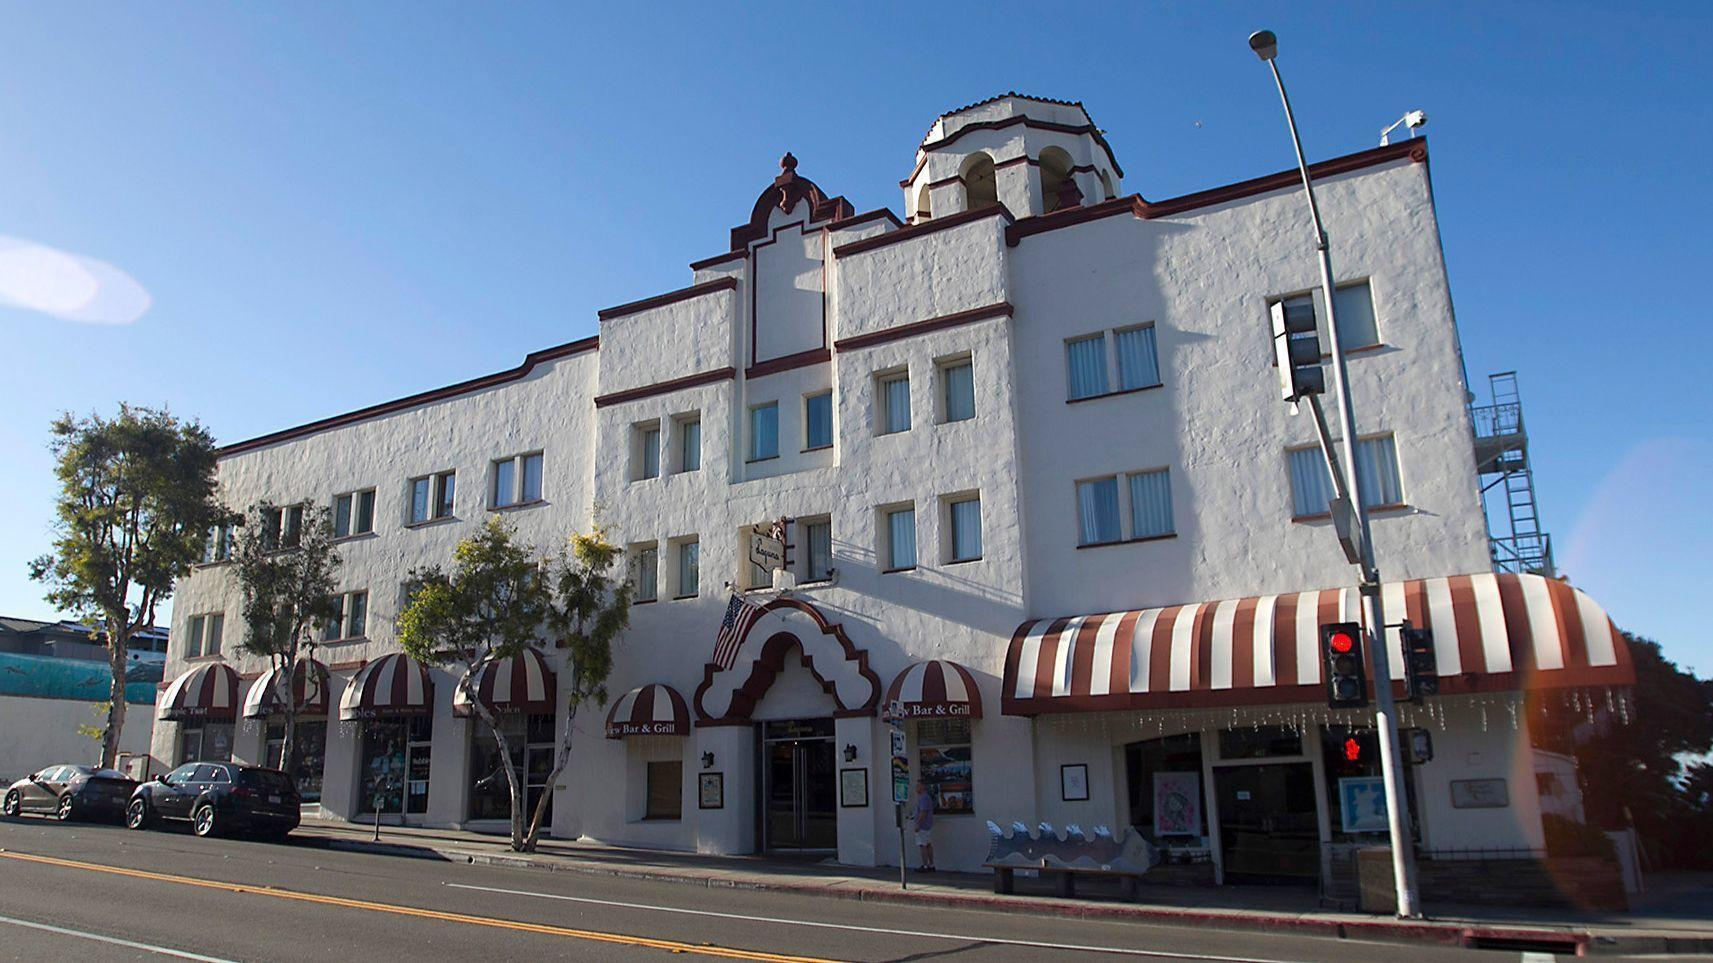 3 Businesses Remain Open At Shuttered Hotel Laguna